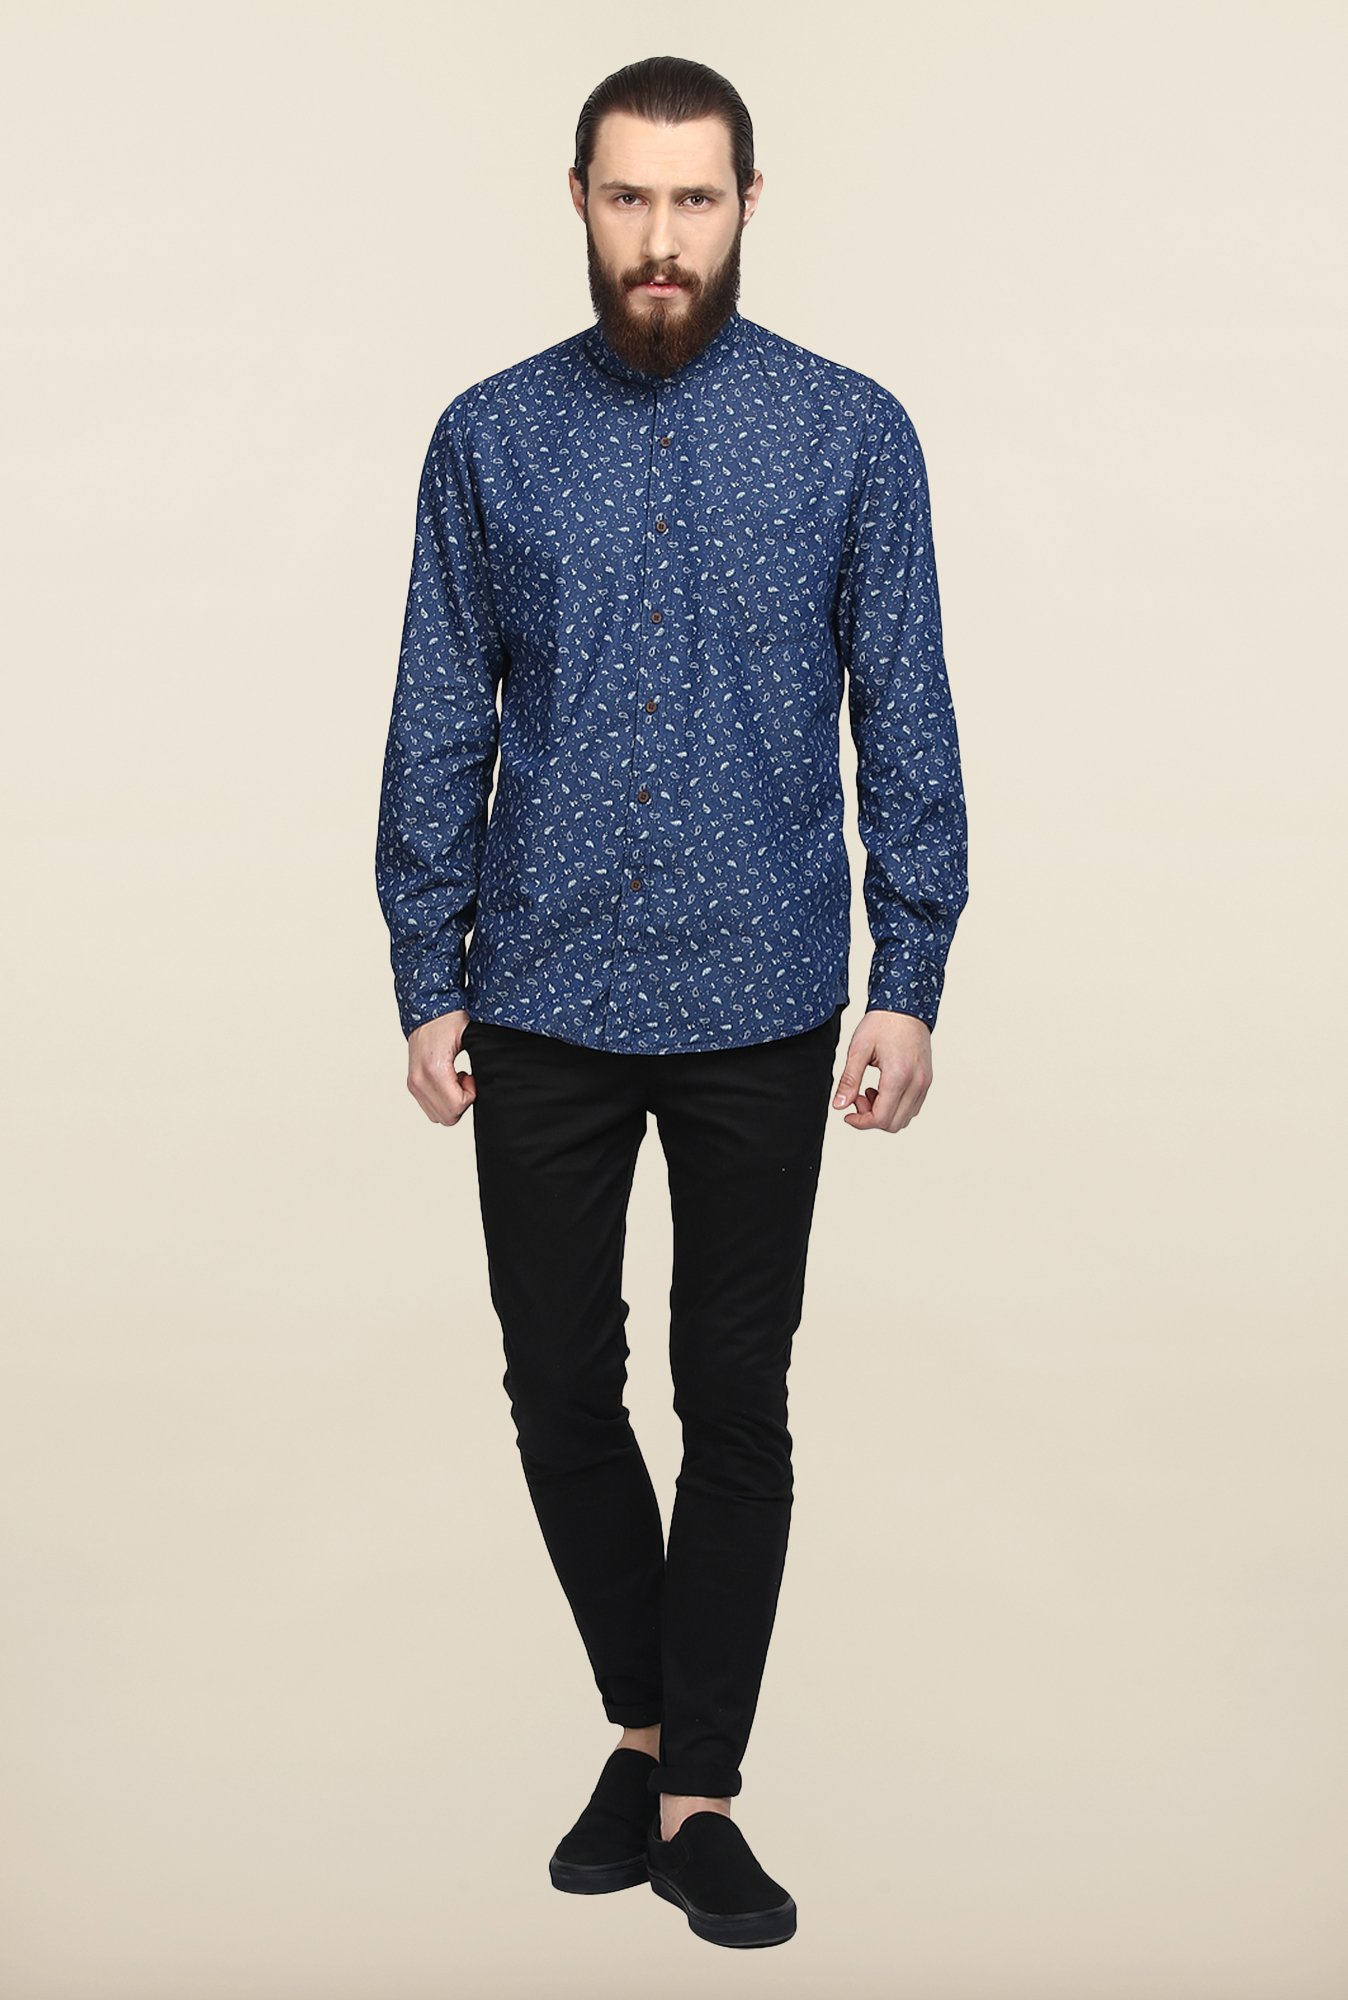 Turtle Blue Paisley Print Casual Shirt